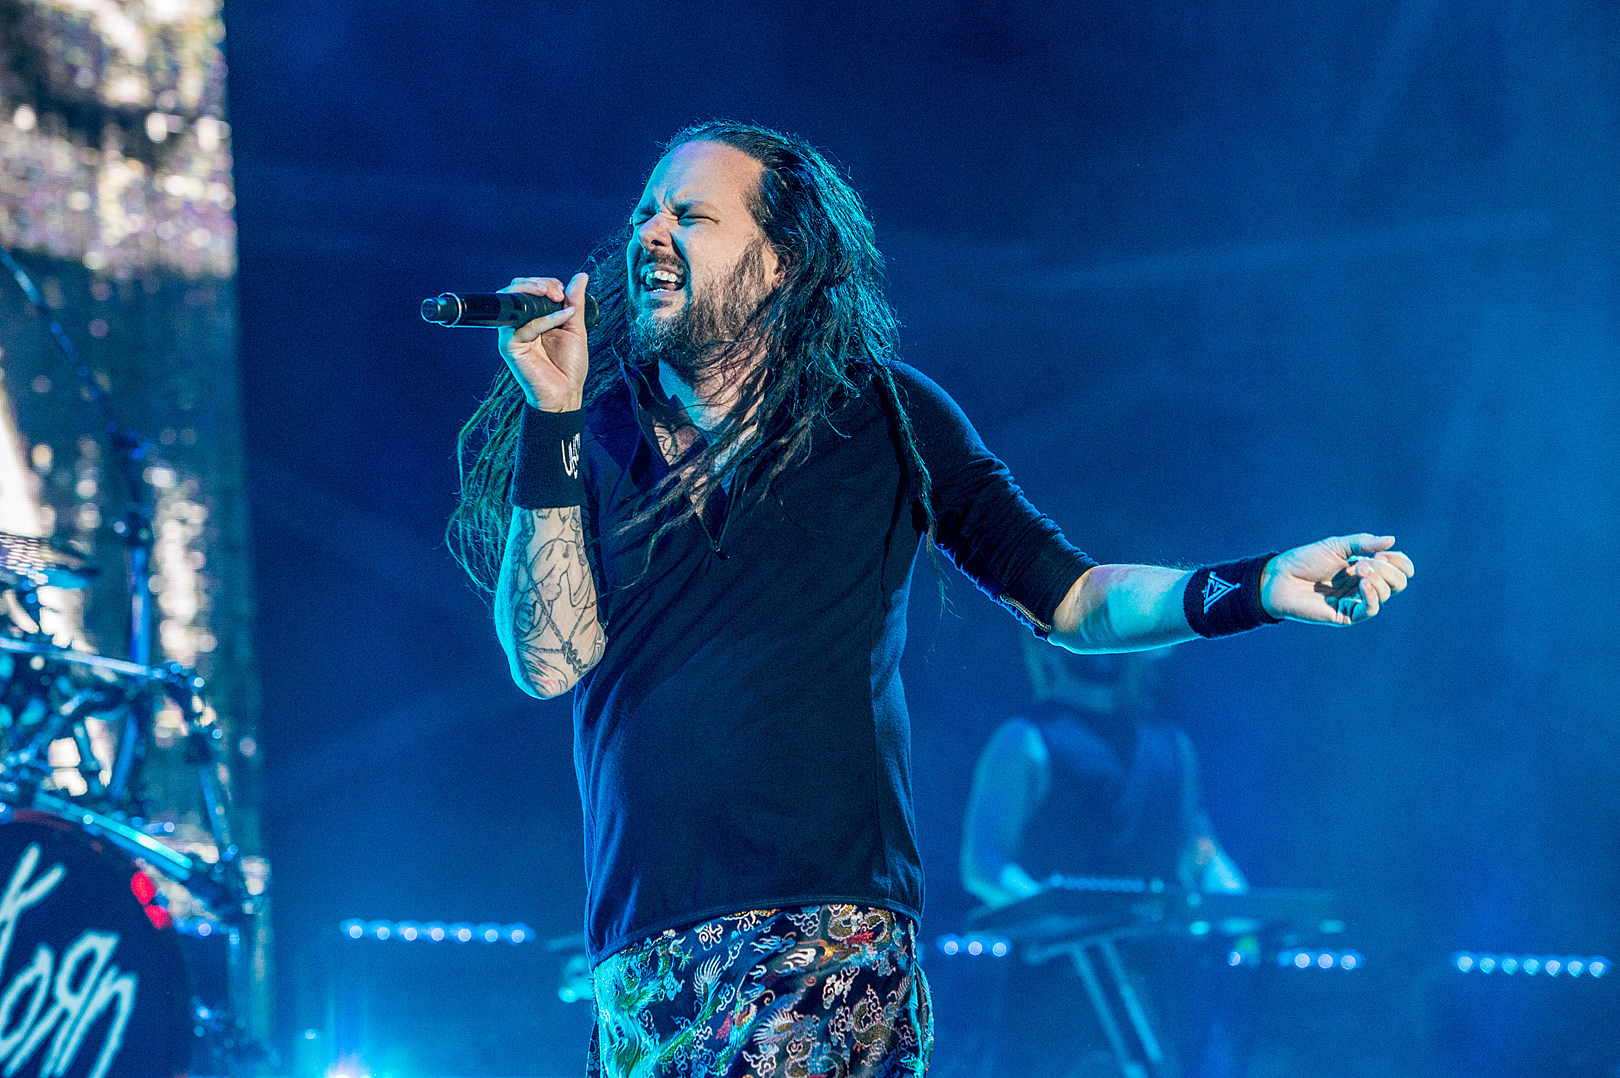 Jonathan Davis on Playing After Wife's Death: 'Out Here Is My Therapy'